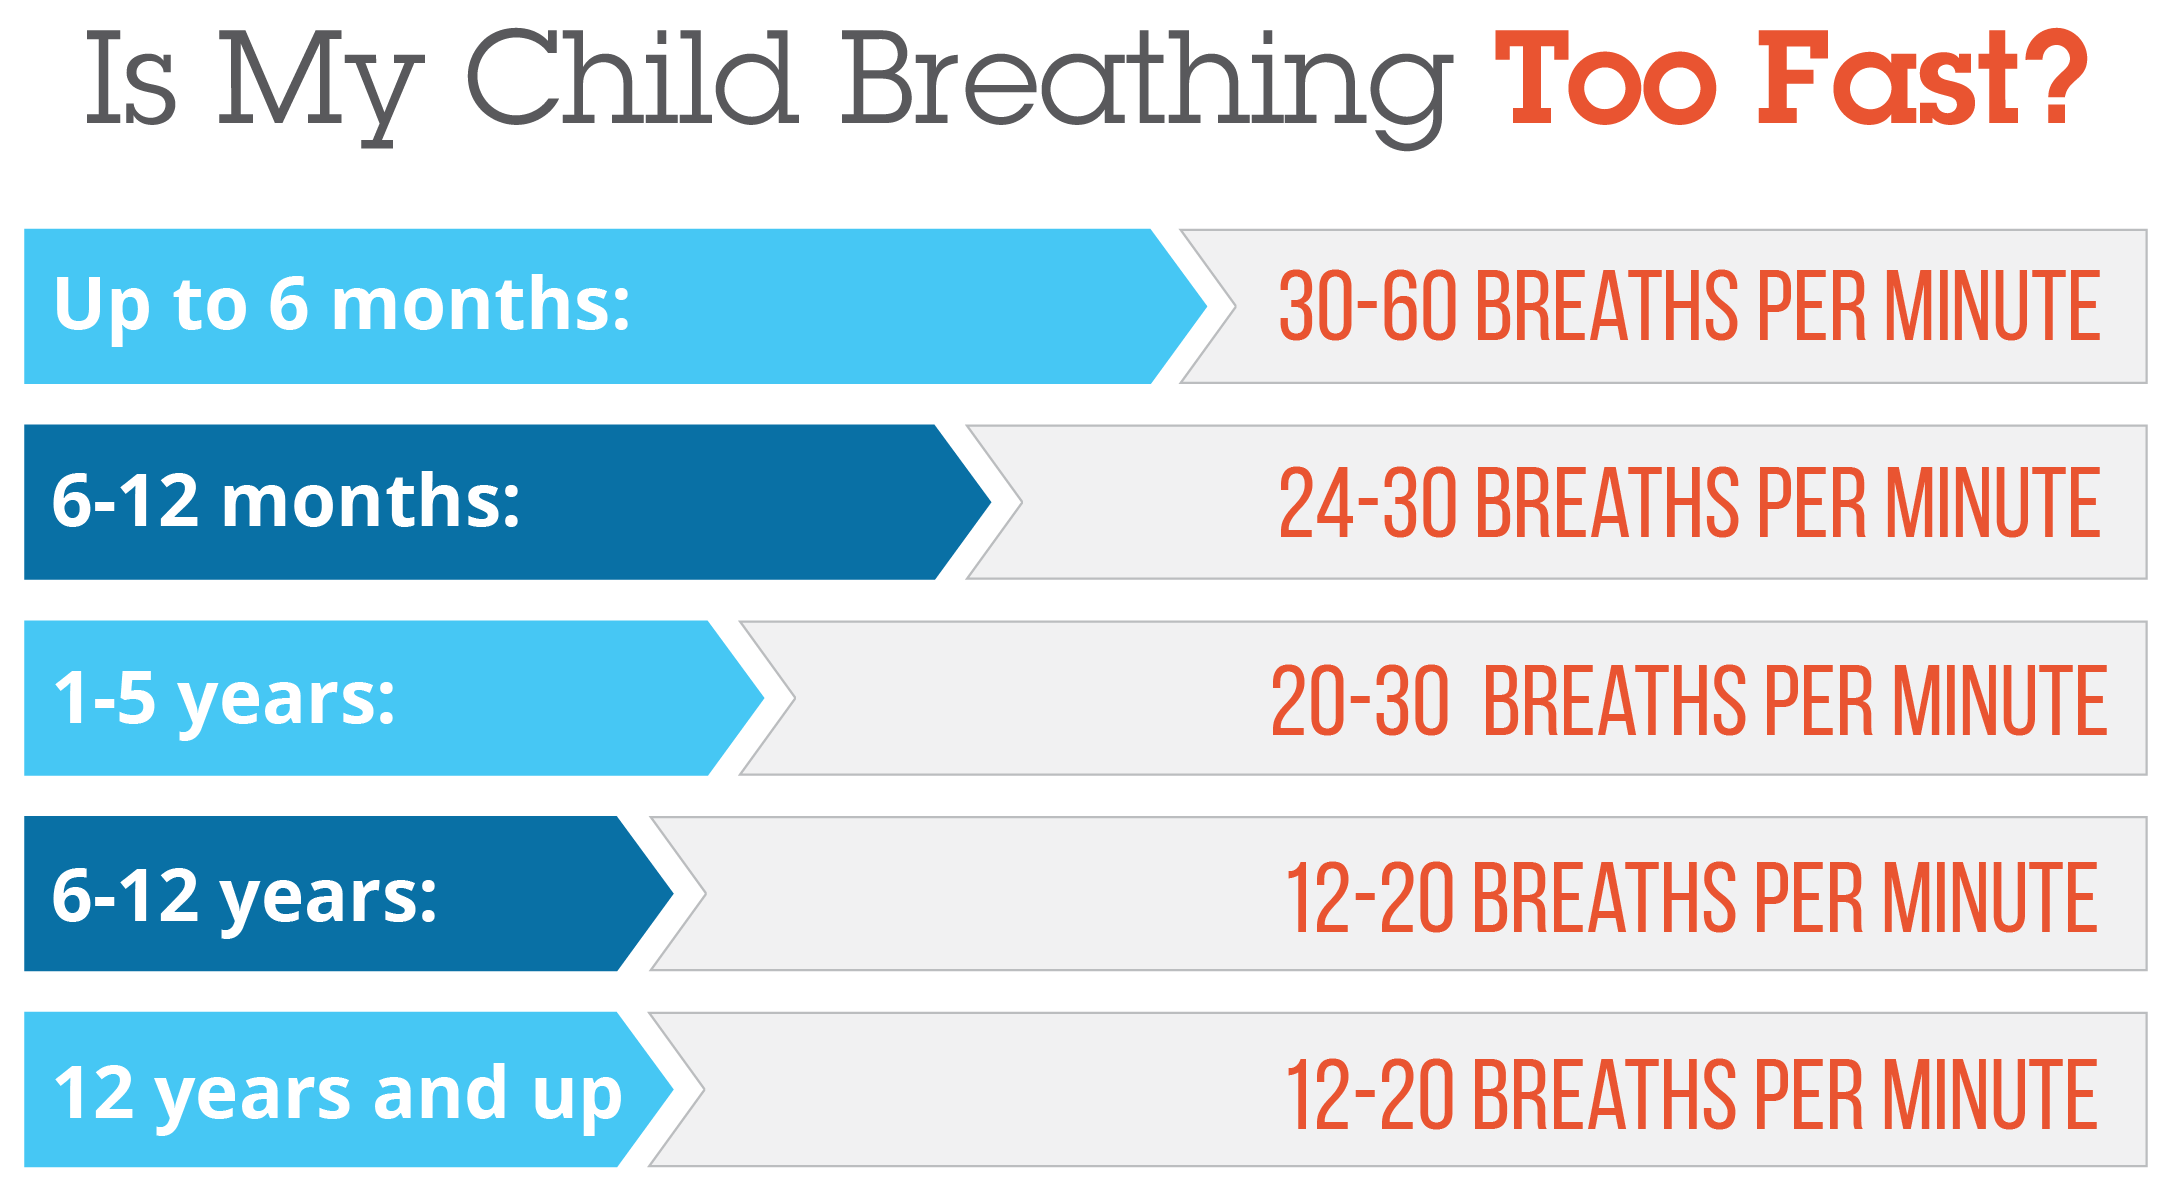 If Your Child Is Breathing Fast